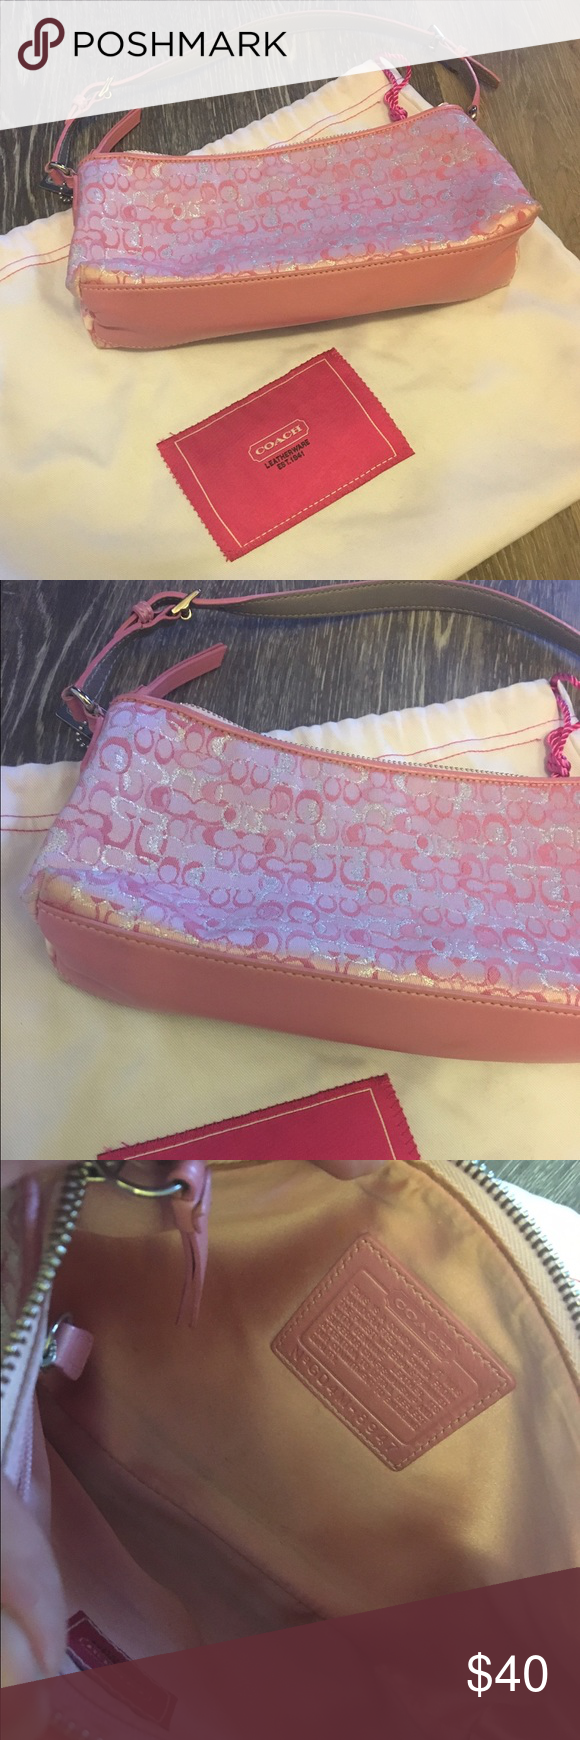 🌸adorable pink COACH bag🌸 Small pink and silver COACH emblem bag. No stains, no wear and tear, comes with duster bag. Bag seems to have a tiny dirt mark or something - hardly noticeable - it's towards the bottom left corner in the first pic Coach Bags Mini Bags